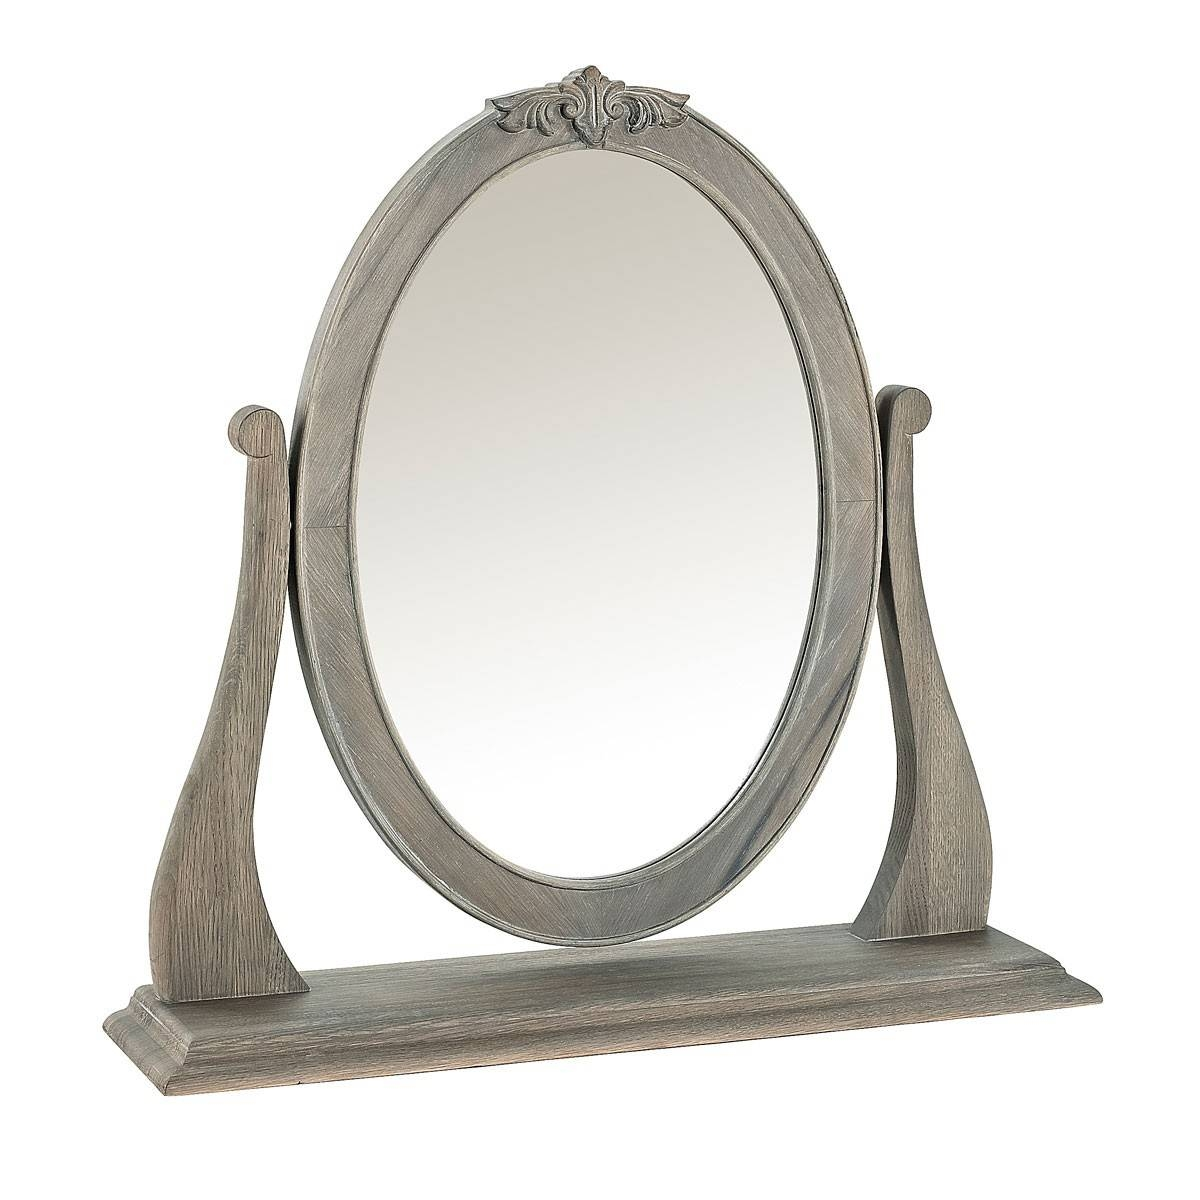 Camille French Style Dressing Table Mirror, Washed Oak | French inside French Style Dressing Table Mirrors (Image 9 of 25)